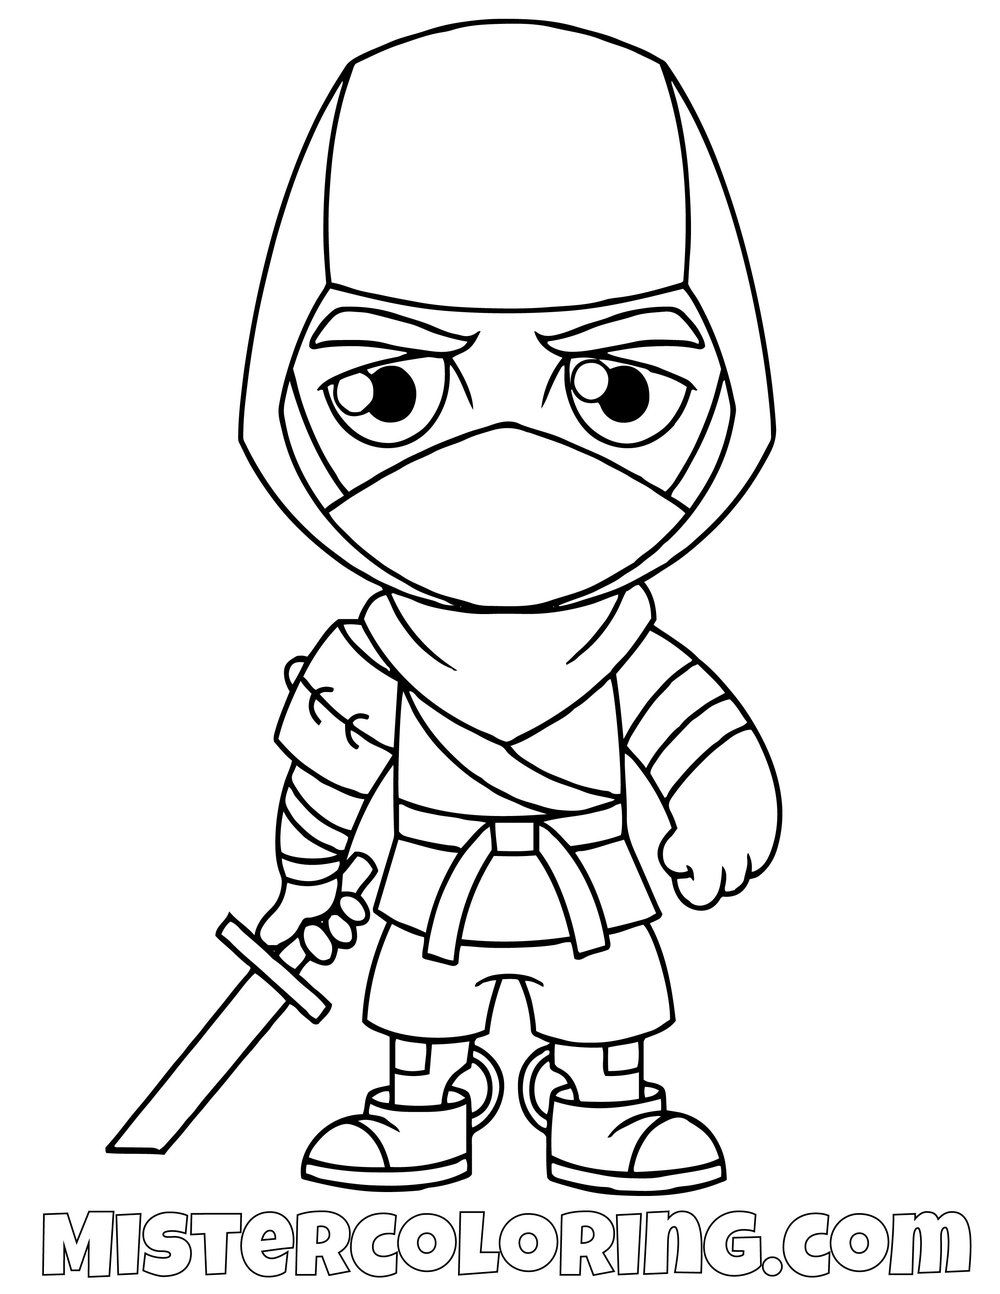 Free Ninja Chibi Fortnite Coloring Page For Kids Fortnite